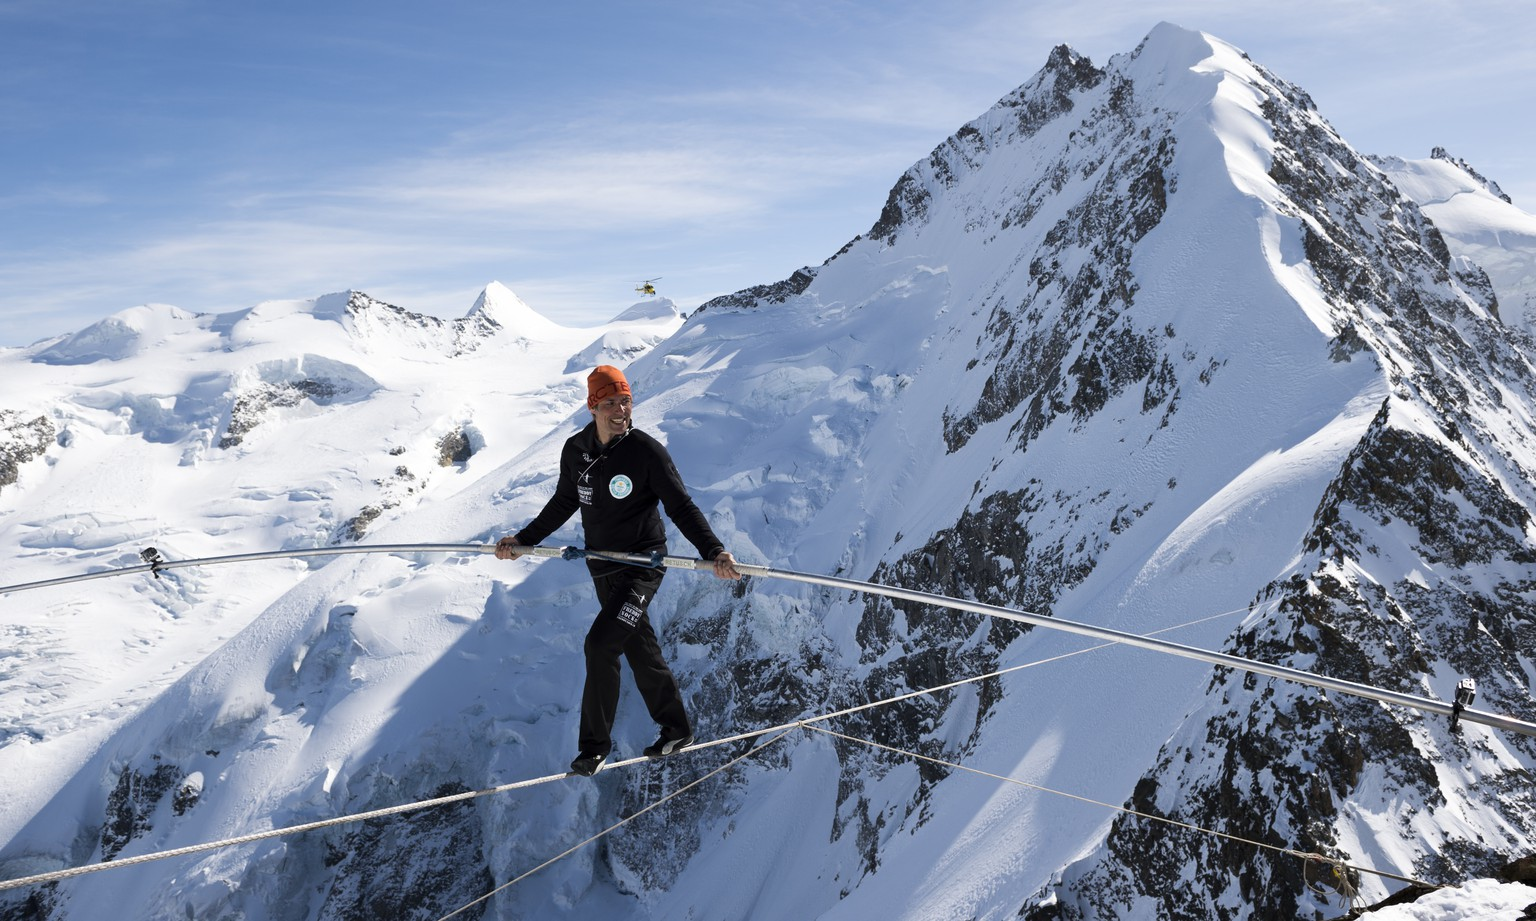 Swiss tightrope artist Freddy Nock walks on a rope towards Piz Prievlus, with the Piz Bernina and Biancograt ridge in the background, in Graubuenden, eastern Switzerland, on Friday, March 20th, 2015. He covered 350 meters of distance in an altitude of 3500 meters. (KEYSTONE/Gian Ehrenzeller)